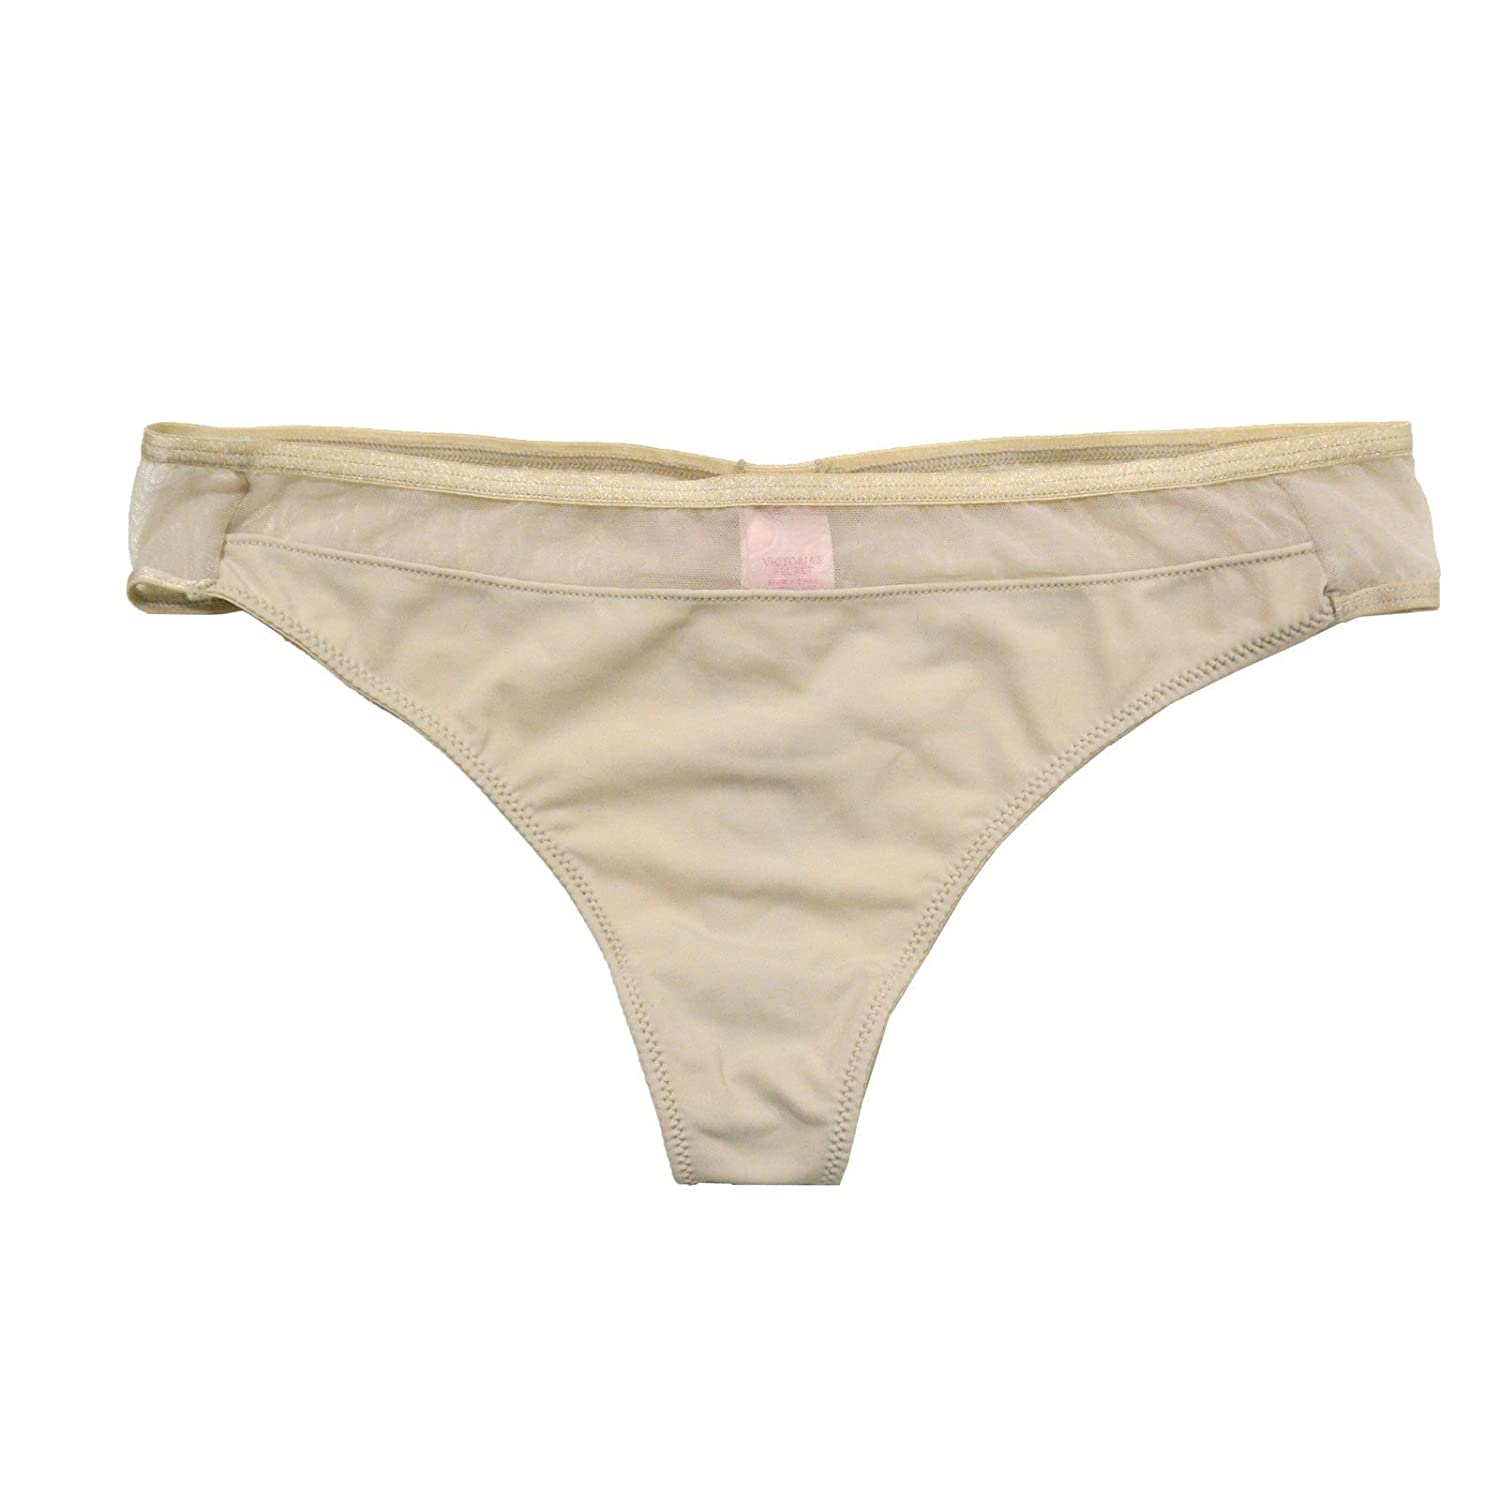 5013ca8ca4f0 Victoria's Secret Very Sexy Thong Panties with Mesh Detail at Amazon  Women's Clothing store: